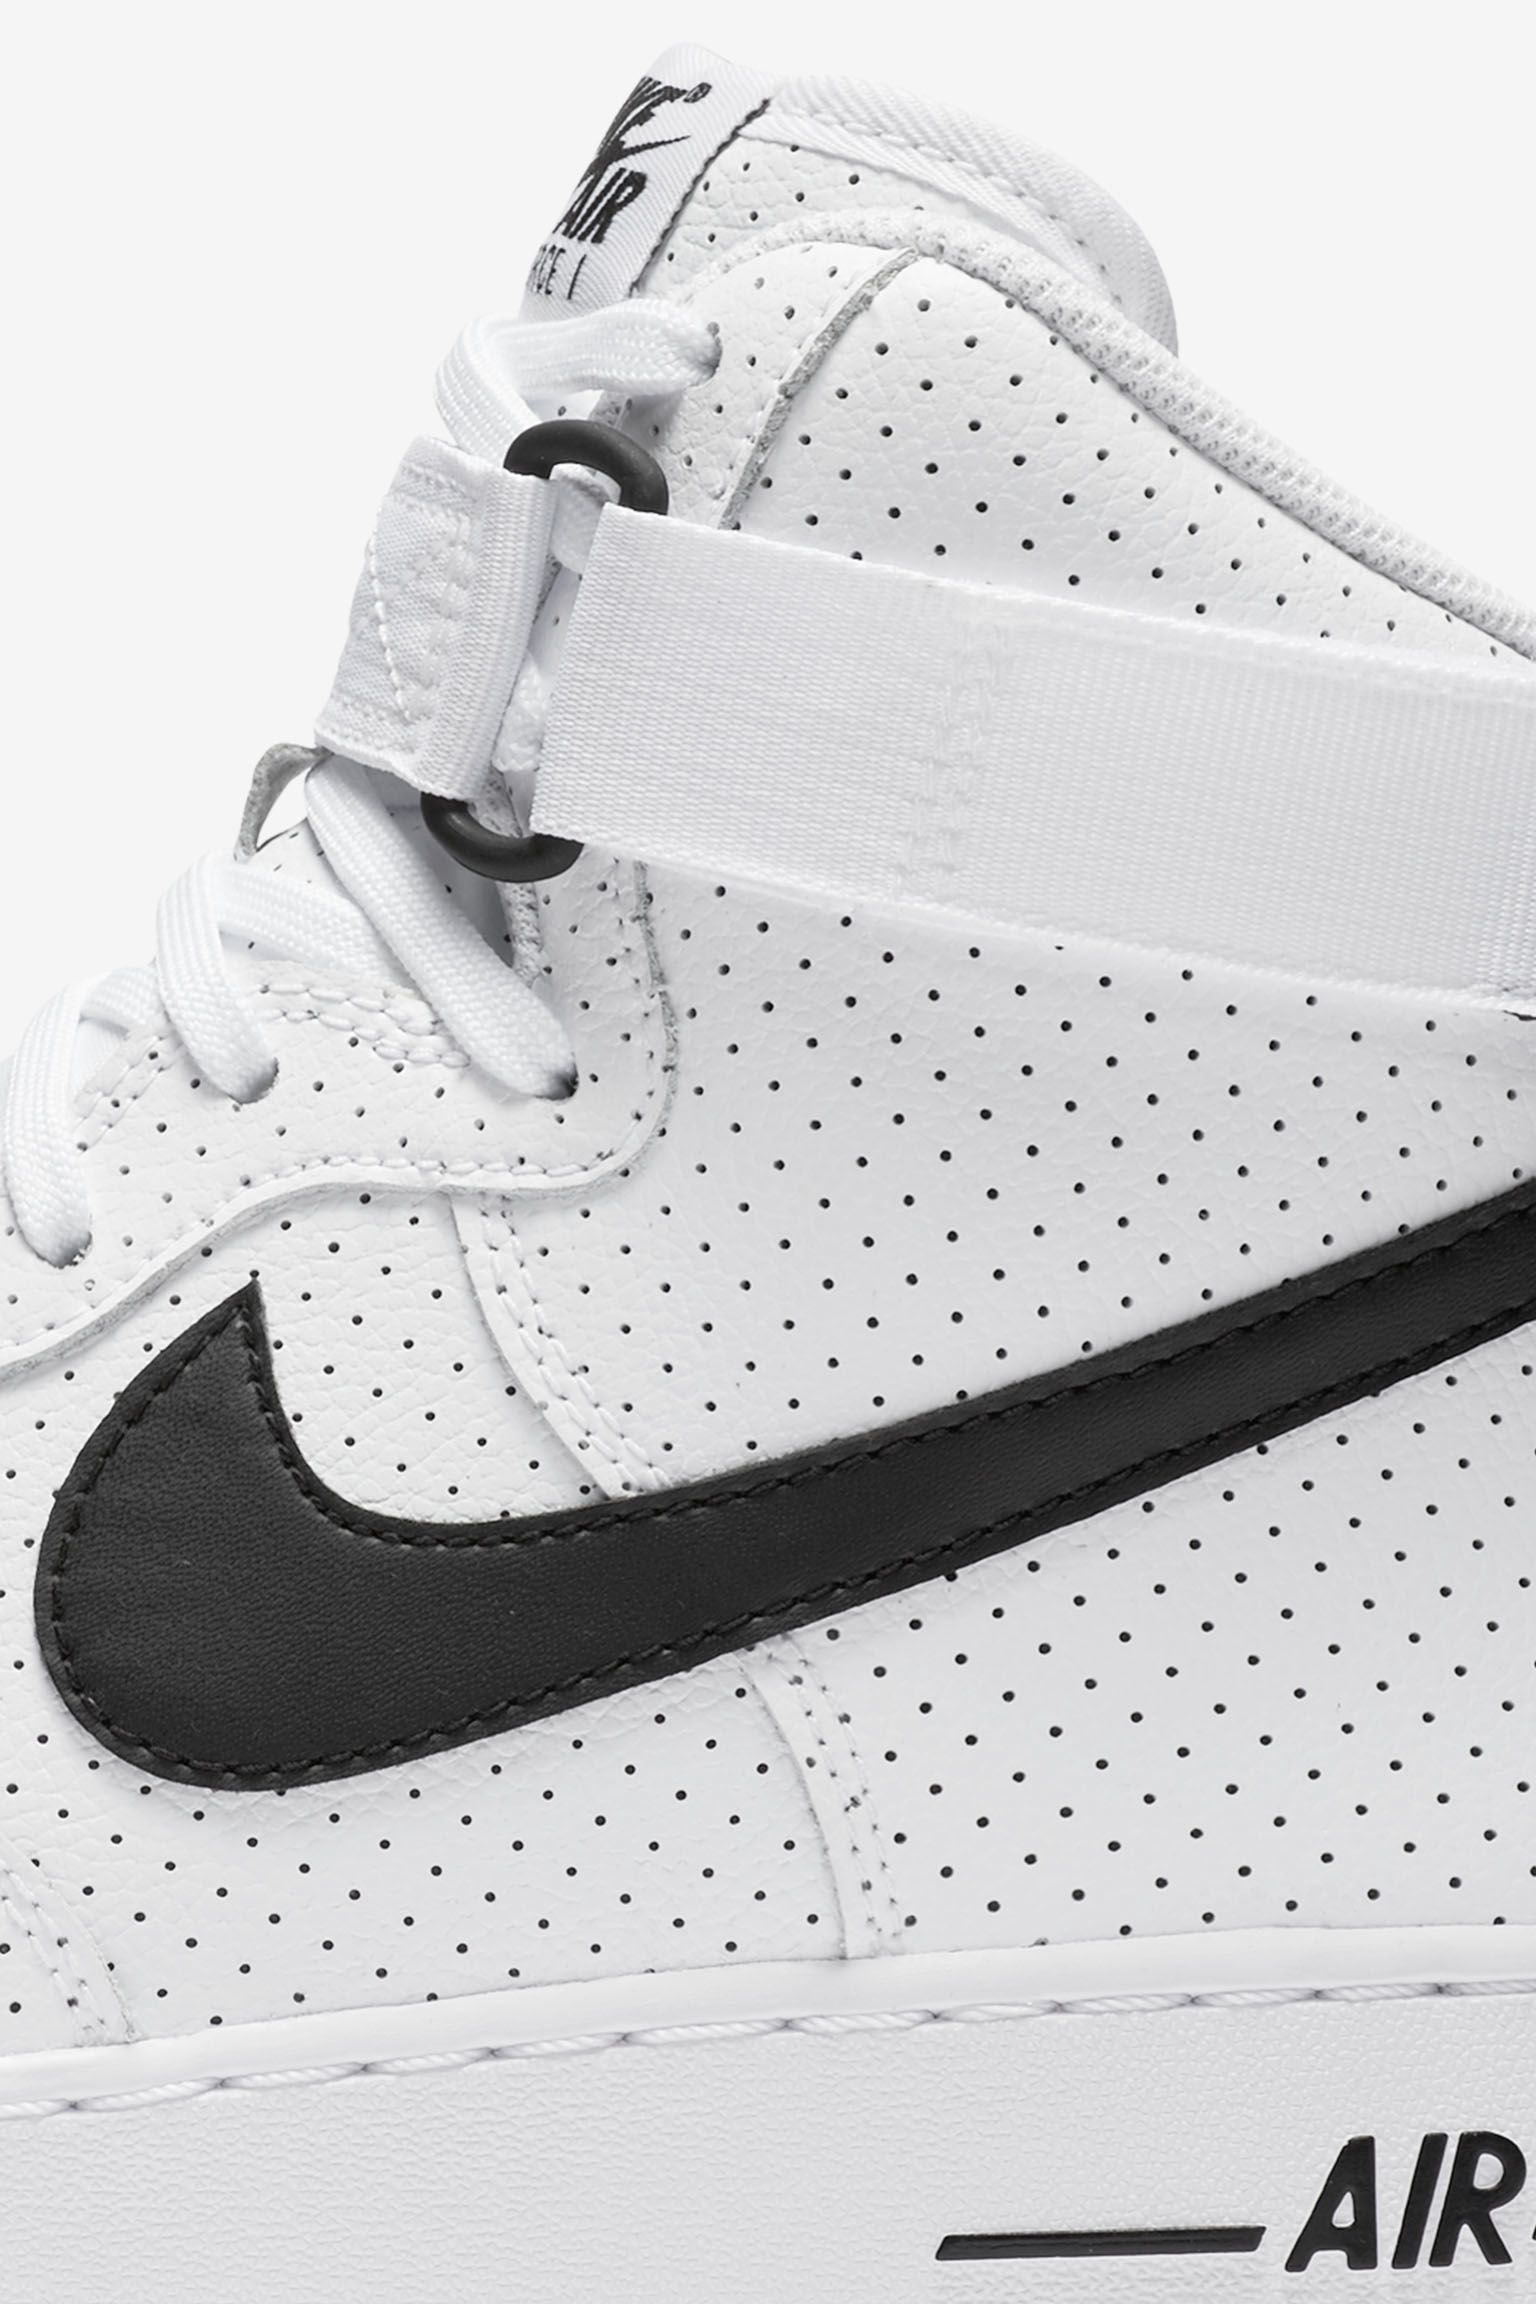 Nike Air Force 1 'Perforated Pack' White